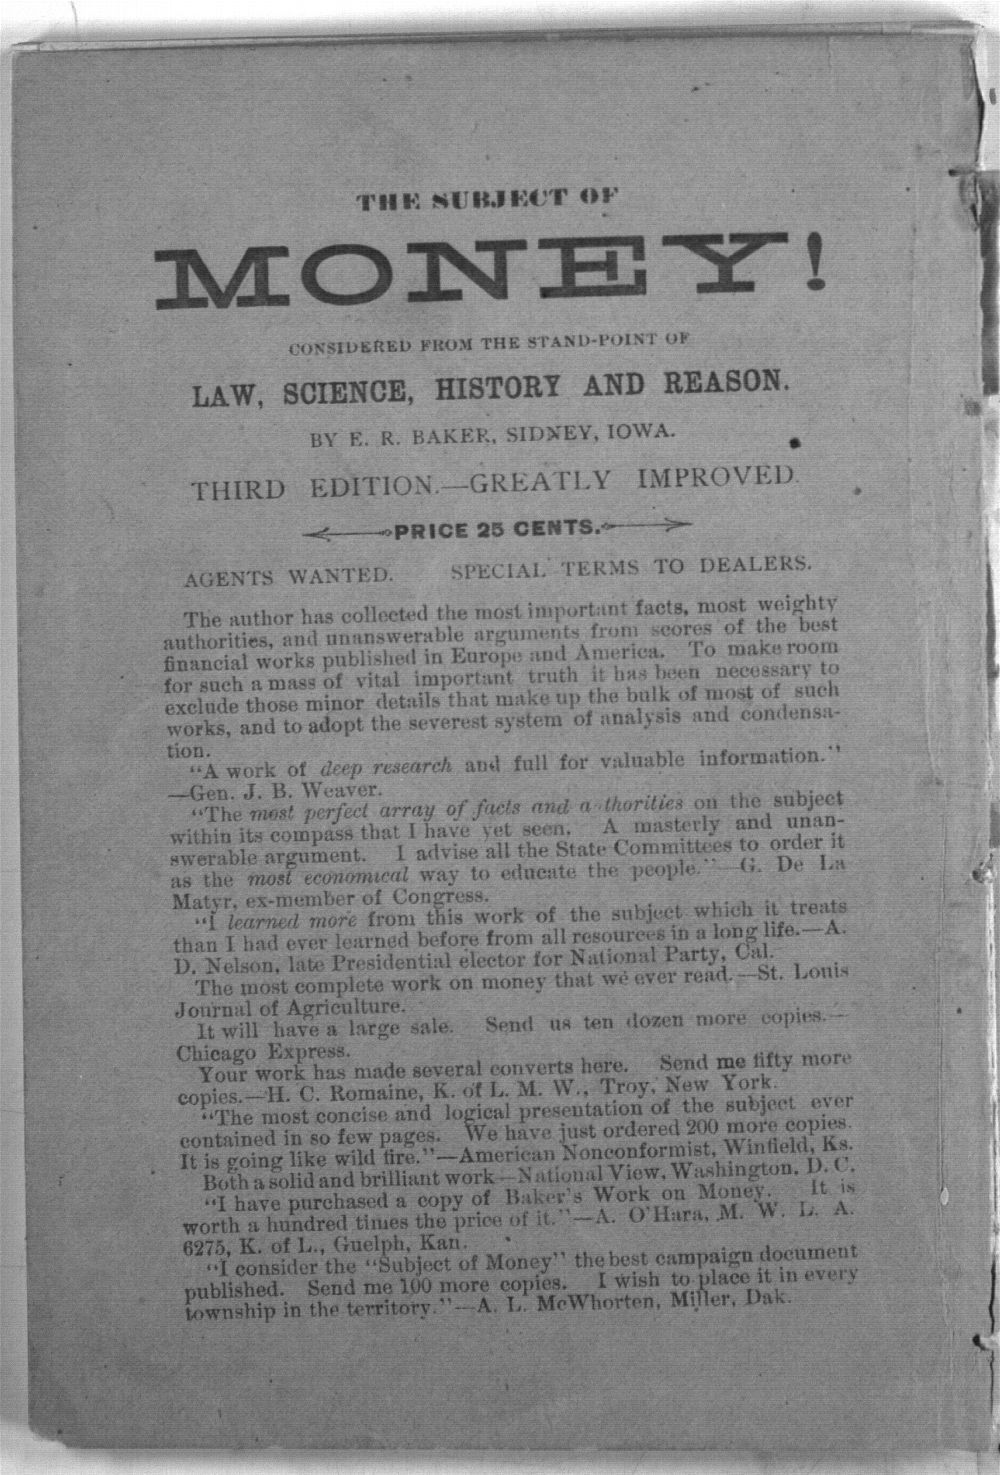 The Subject of Money Considered from the Standpoints of Law, Science, History, Reason. (Third Edition) - 67